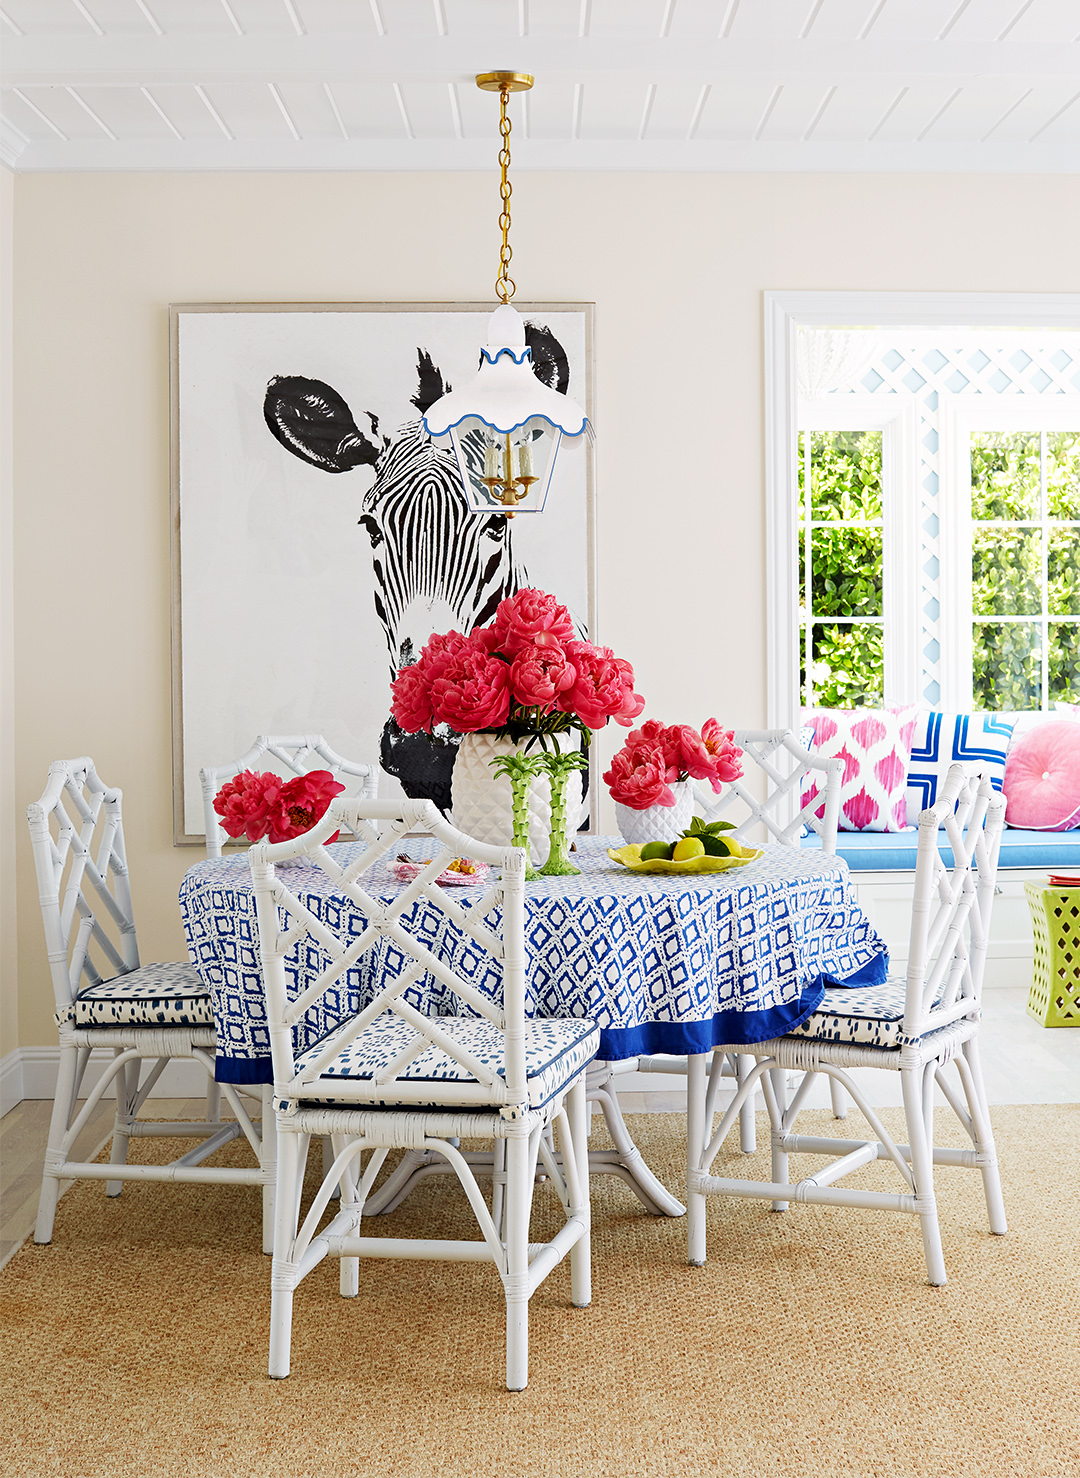 Preppy Meets Posh in This Colorful California Beach Home